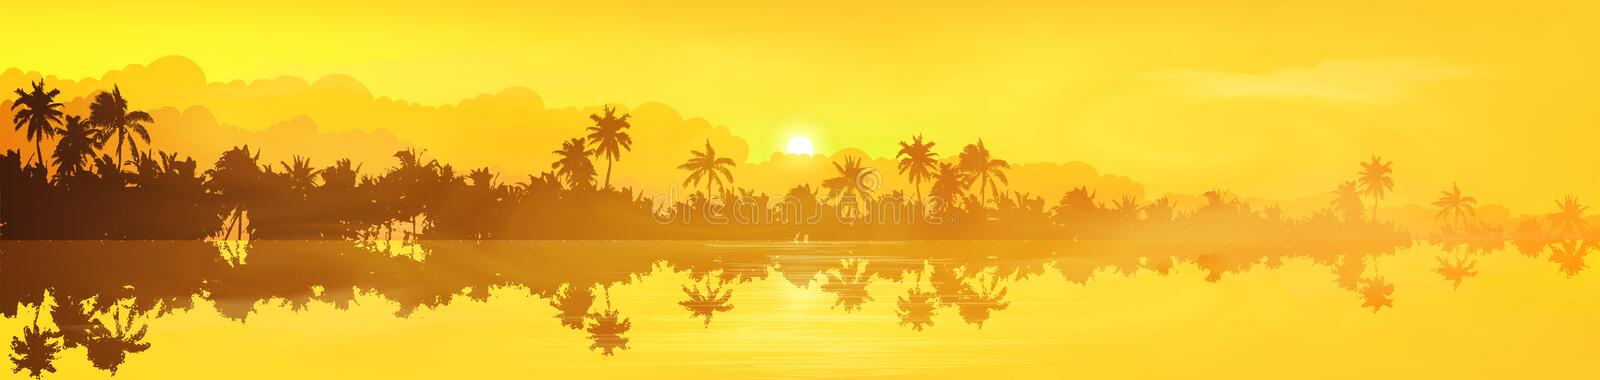 Yellow tropical island with palm trees silhouettes sunset or sunrise view in fog and clouds, vector banner illustration.  royalty free illustration